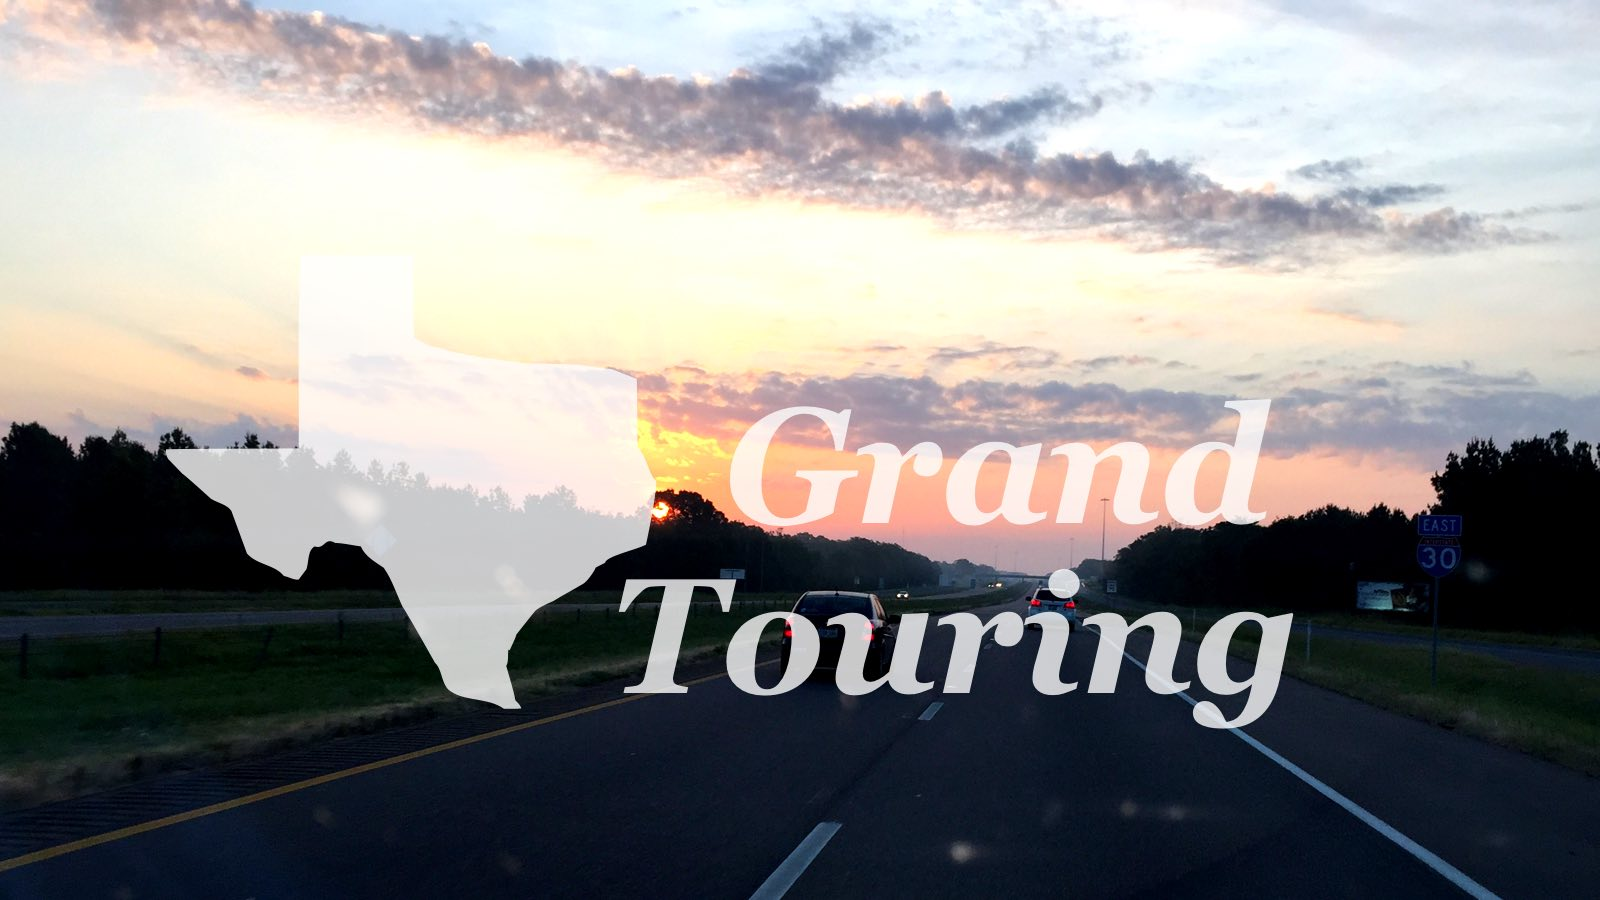 Texas Grand Touring - Driving the vast state!